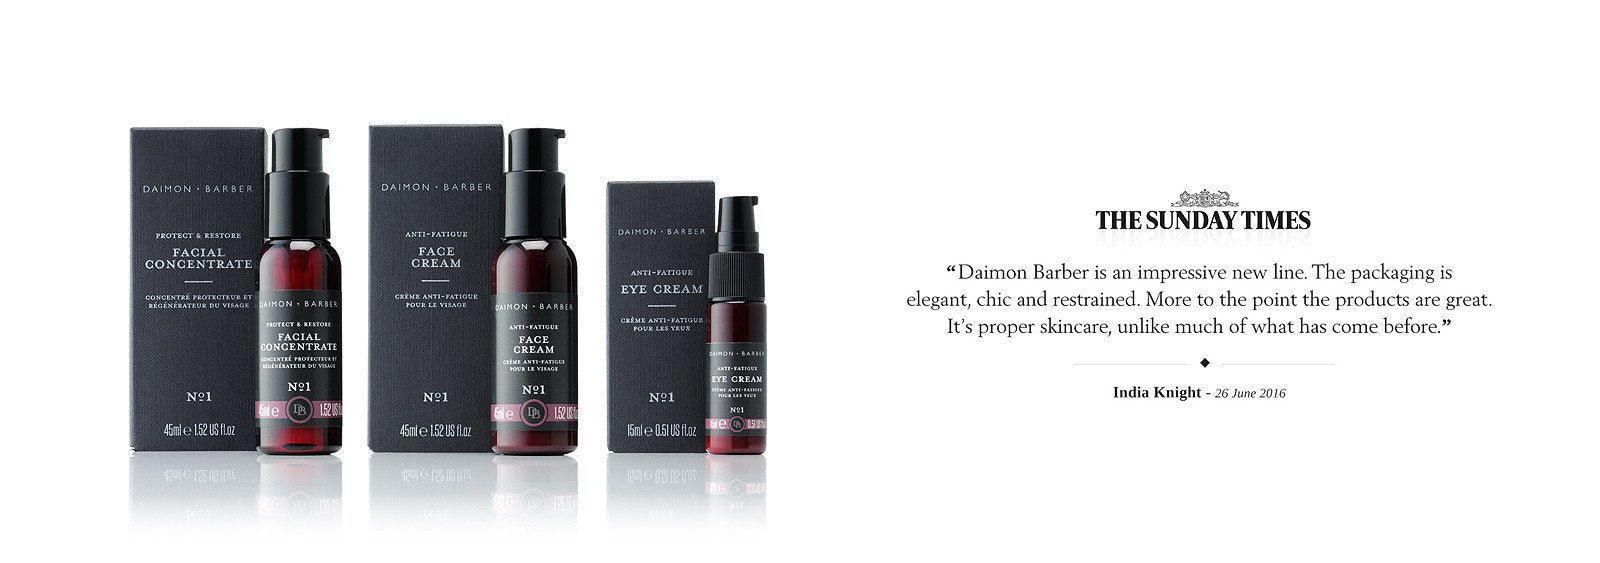 Daimon Barber The Sunday Times India Knight